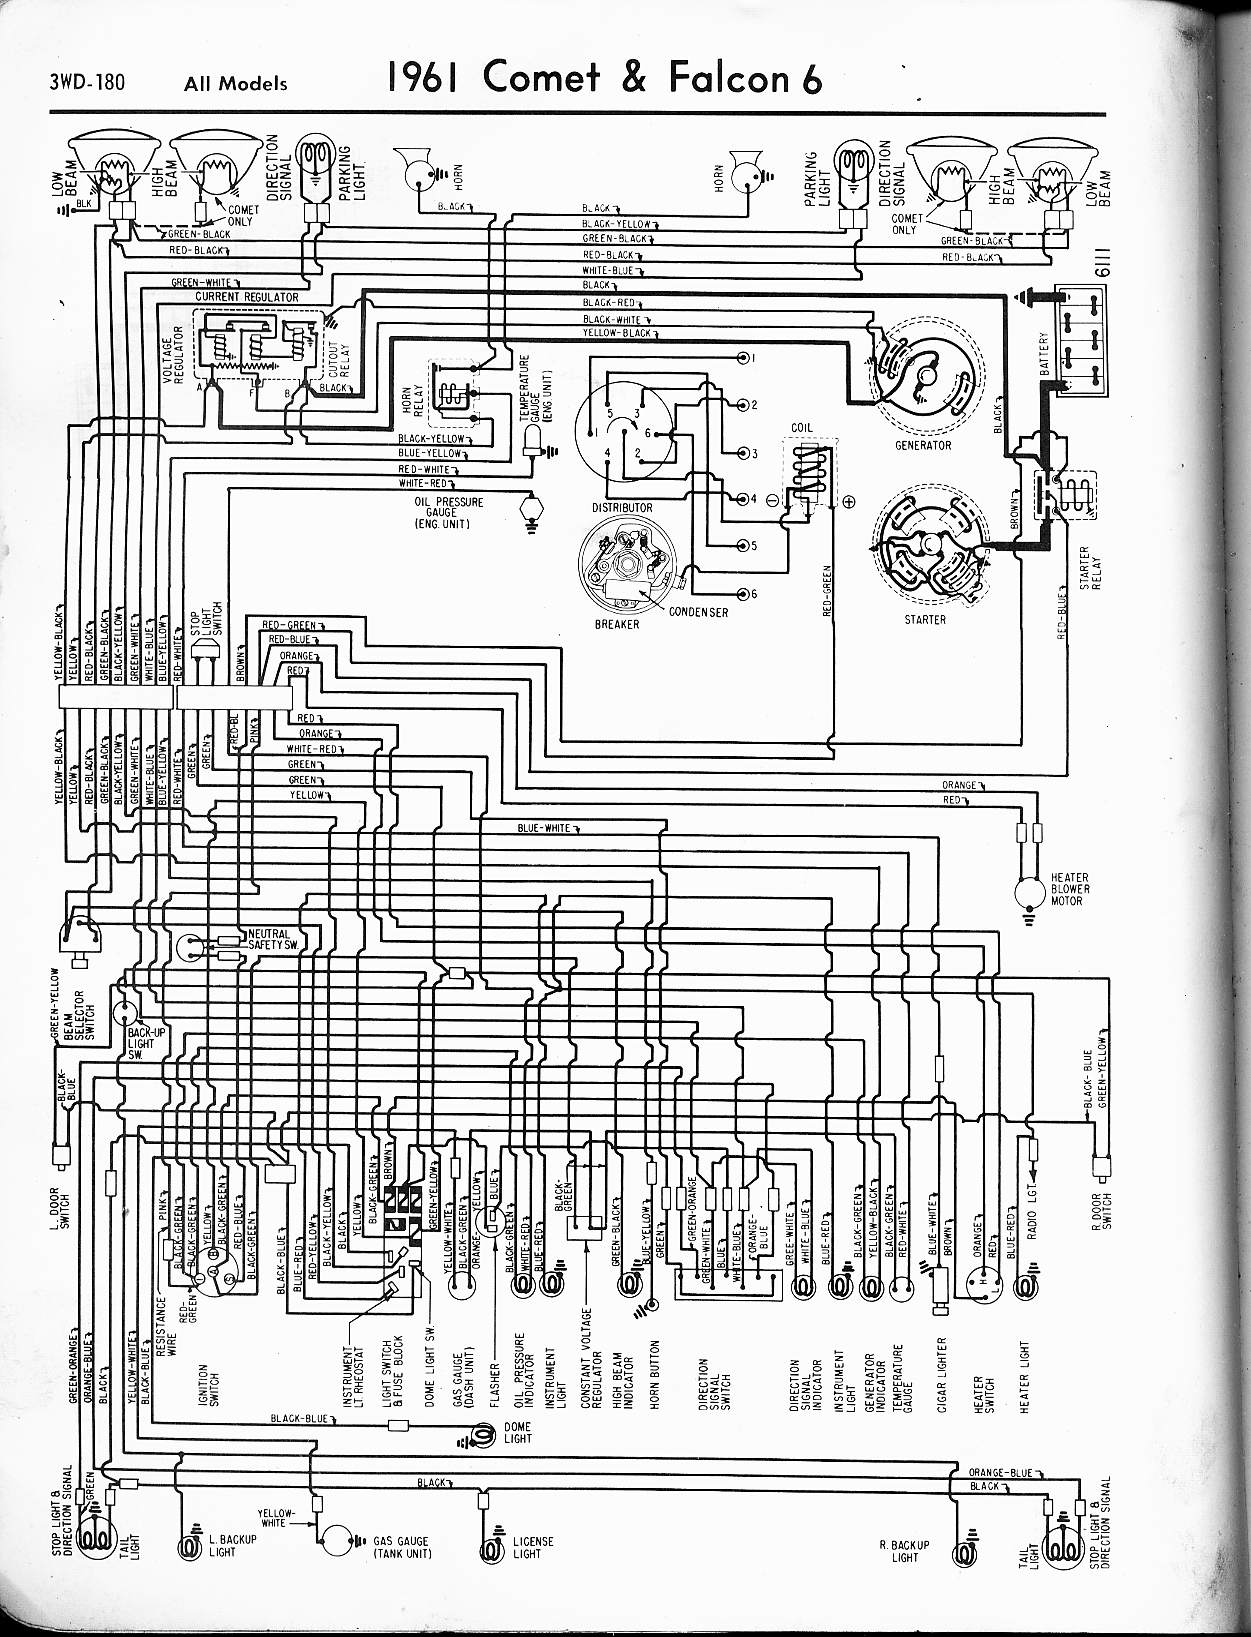 57 65 Ford Wiring Diagrams 1959 Ford Falcon Station Wagon Ford Falcon  Station Wagon Fuse Box